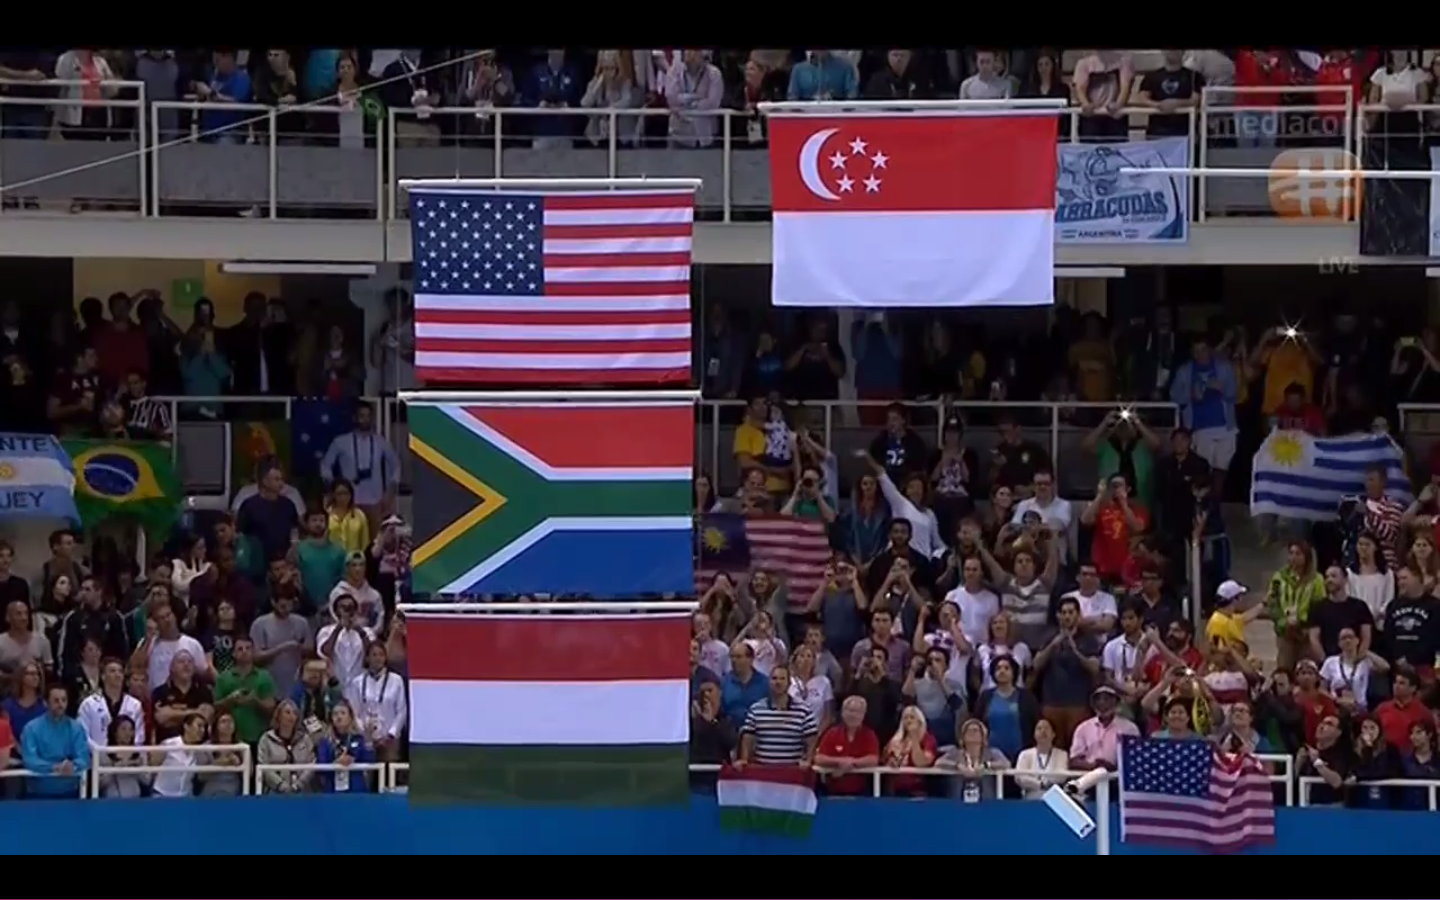 A new moment in Singapore's history being created in front of our very eyes.